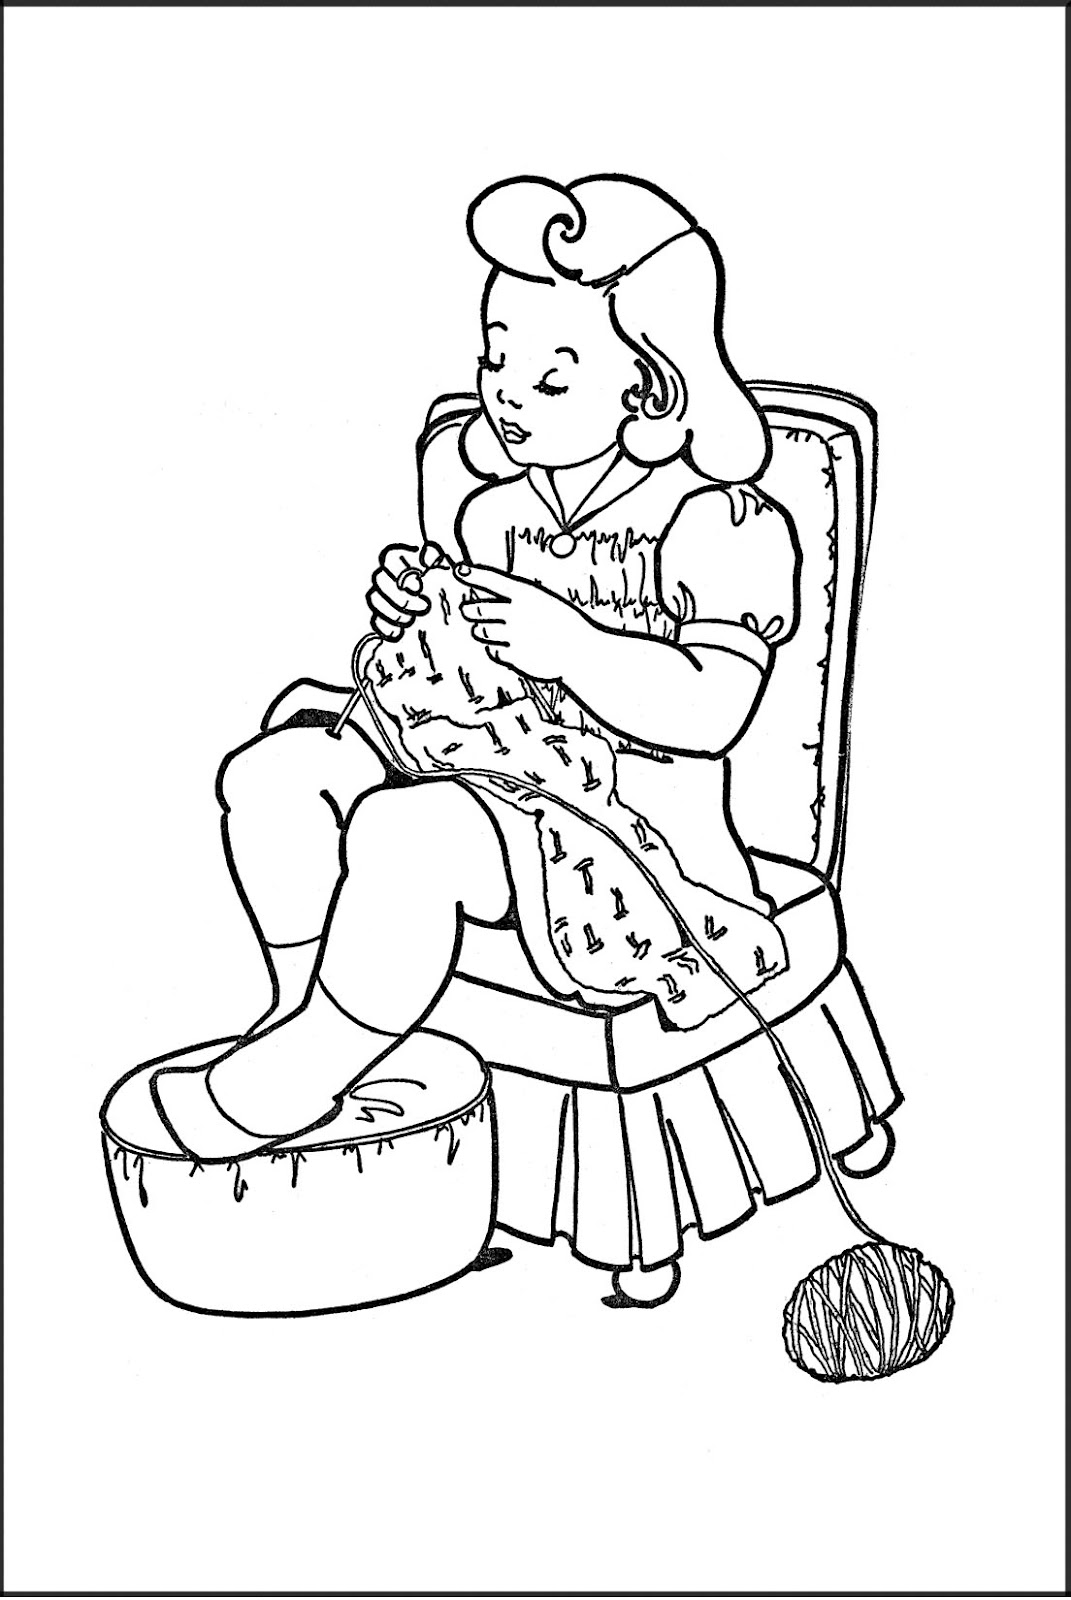 Kids Printable Coloring Page Girl Knitting The Printable Vintage Coloring Pages